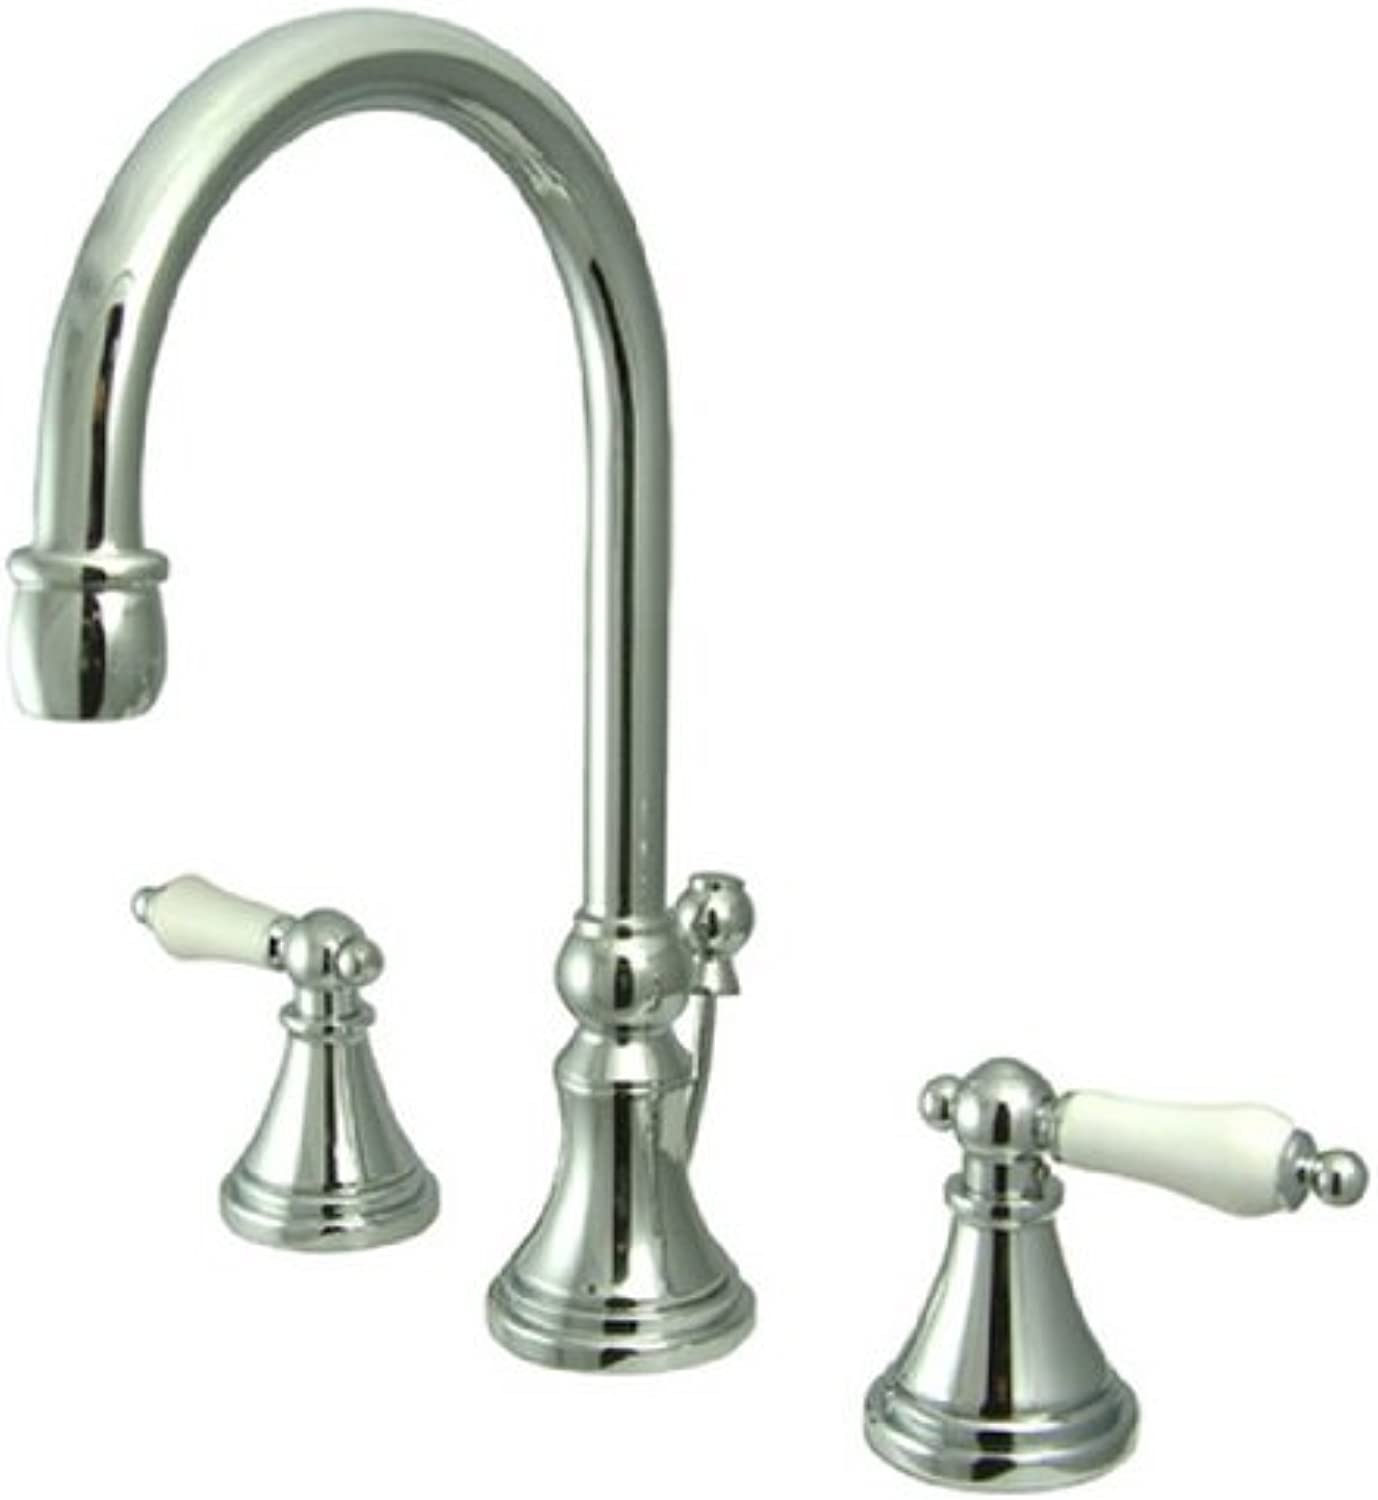 Kingston Messing ks2981pl Gouverneur breitgefchert WC Wasserhahn mit Messing Pop-Up und Porzellan Hebel HA